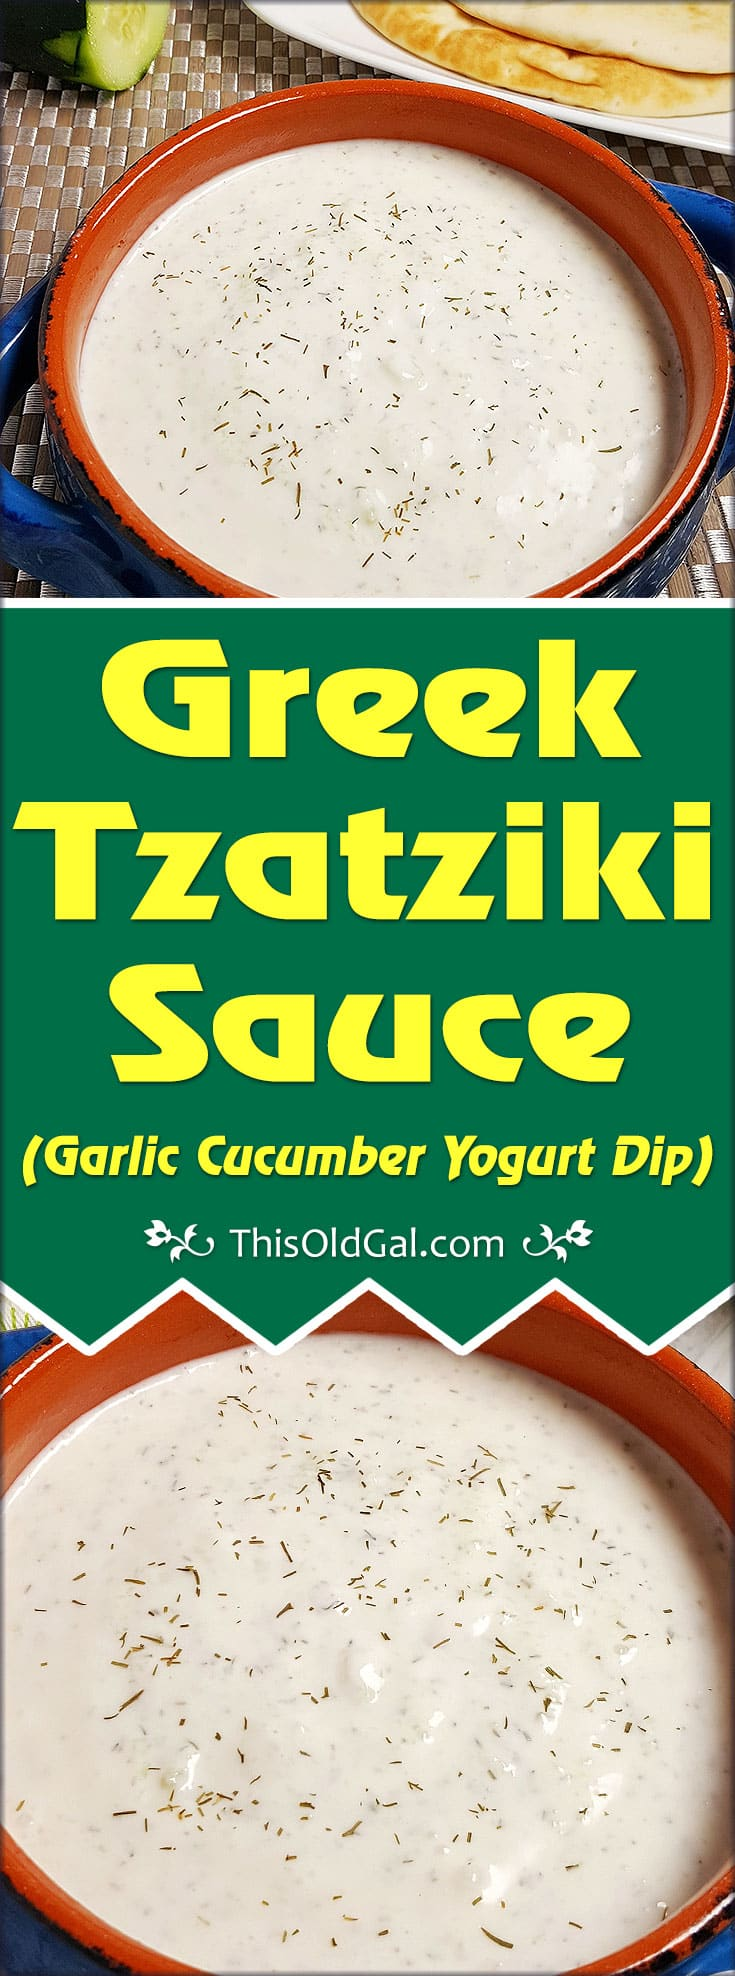 Greek Tzatziki Sauce Recipe (Garlic Cucumber Yogurt Dip)